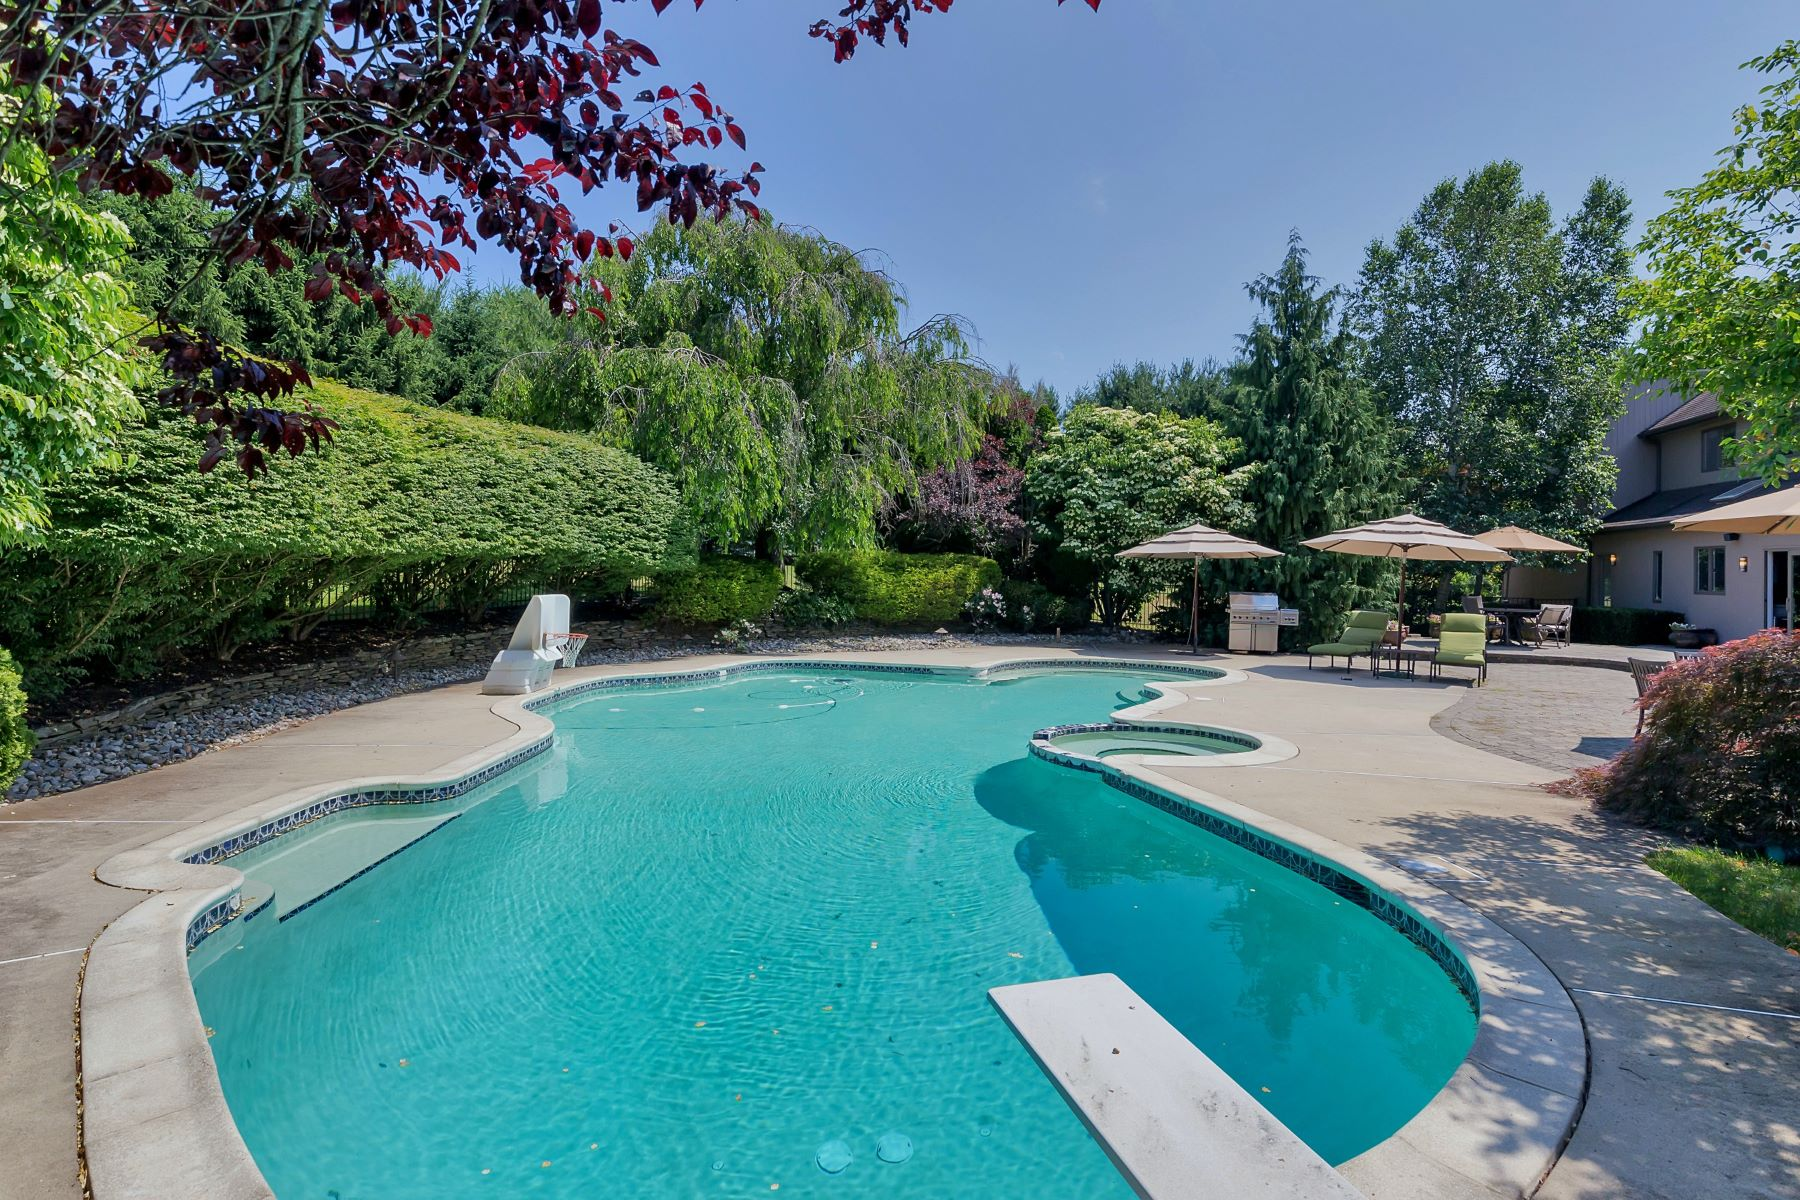 Single Family Home for Sale at Inspiring Contemporary 7 Tanglewood Court Colts Neck, New Jersey, 07722 United States